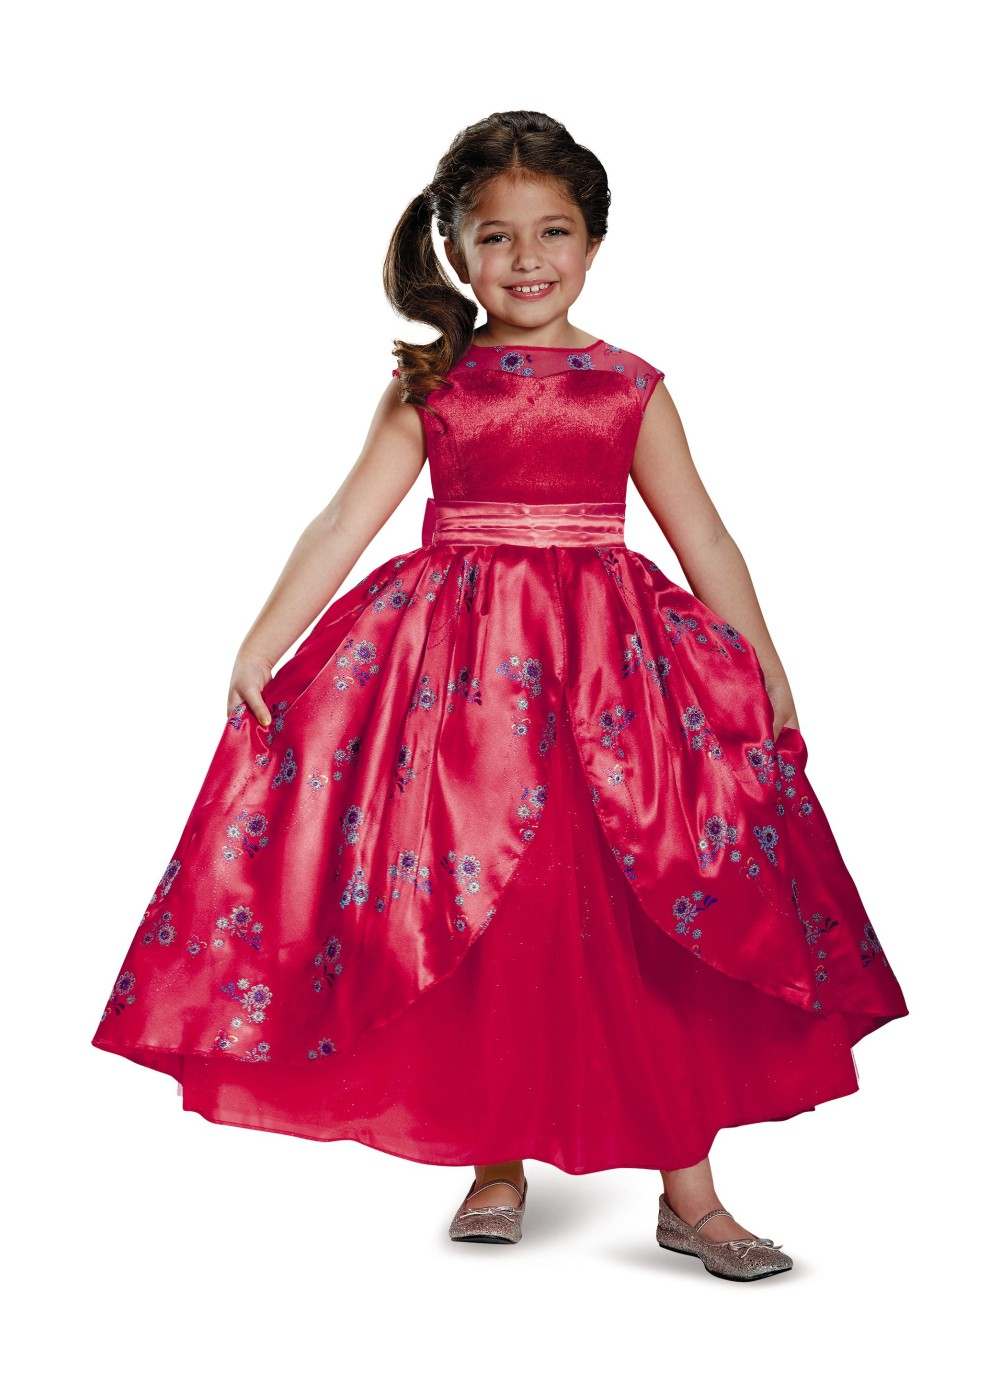 Kids Elena Of Avalor Ball Gown Disney Girl Costume Deluxe